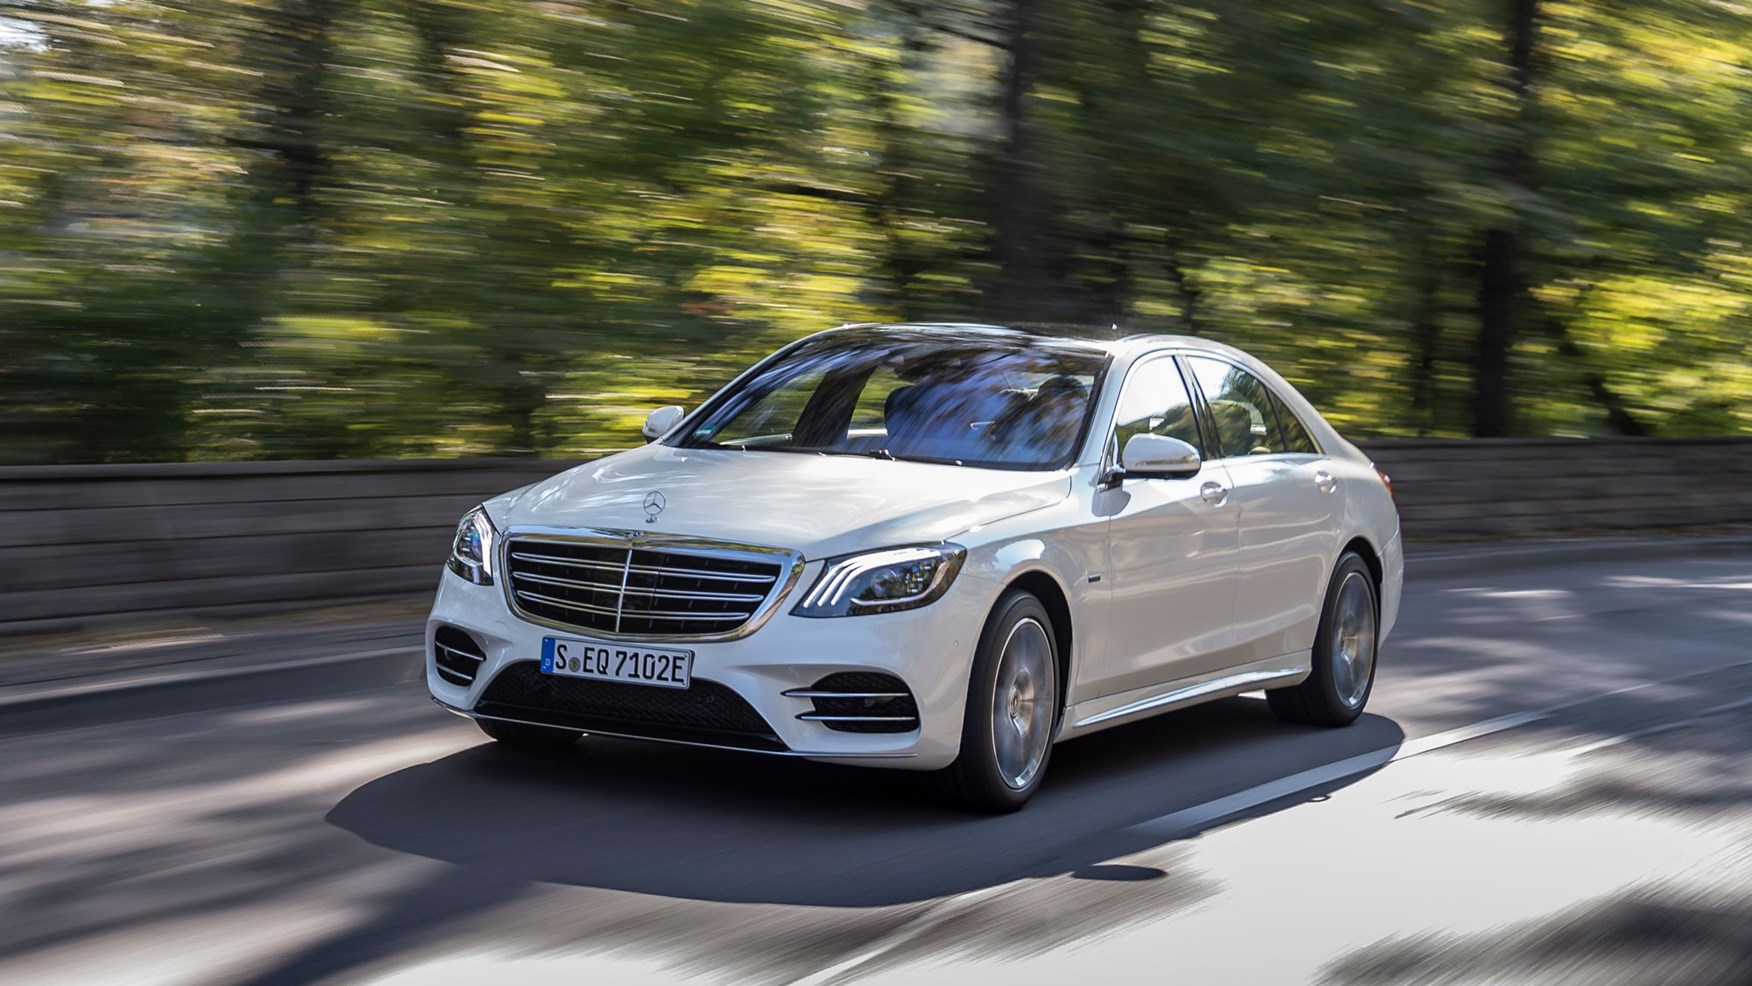 Best Luxury Cars To Lease >> Mercedes-Benz S-class review: we drive the S560e hybrid ...